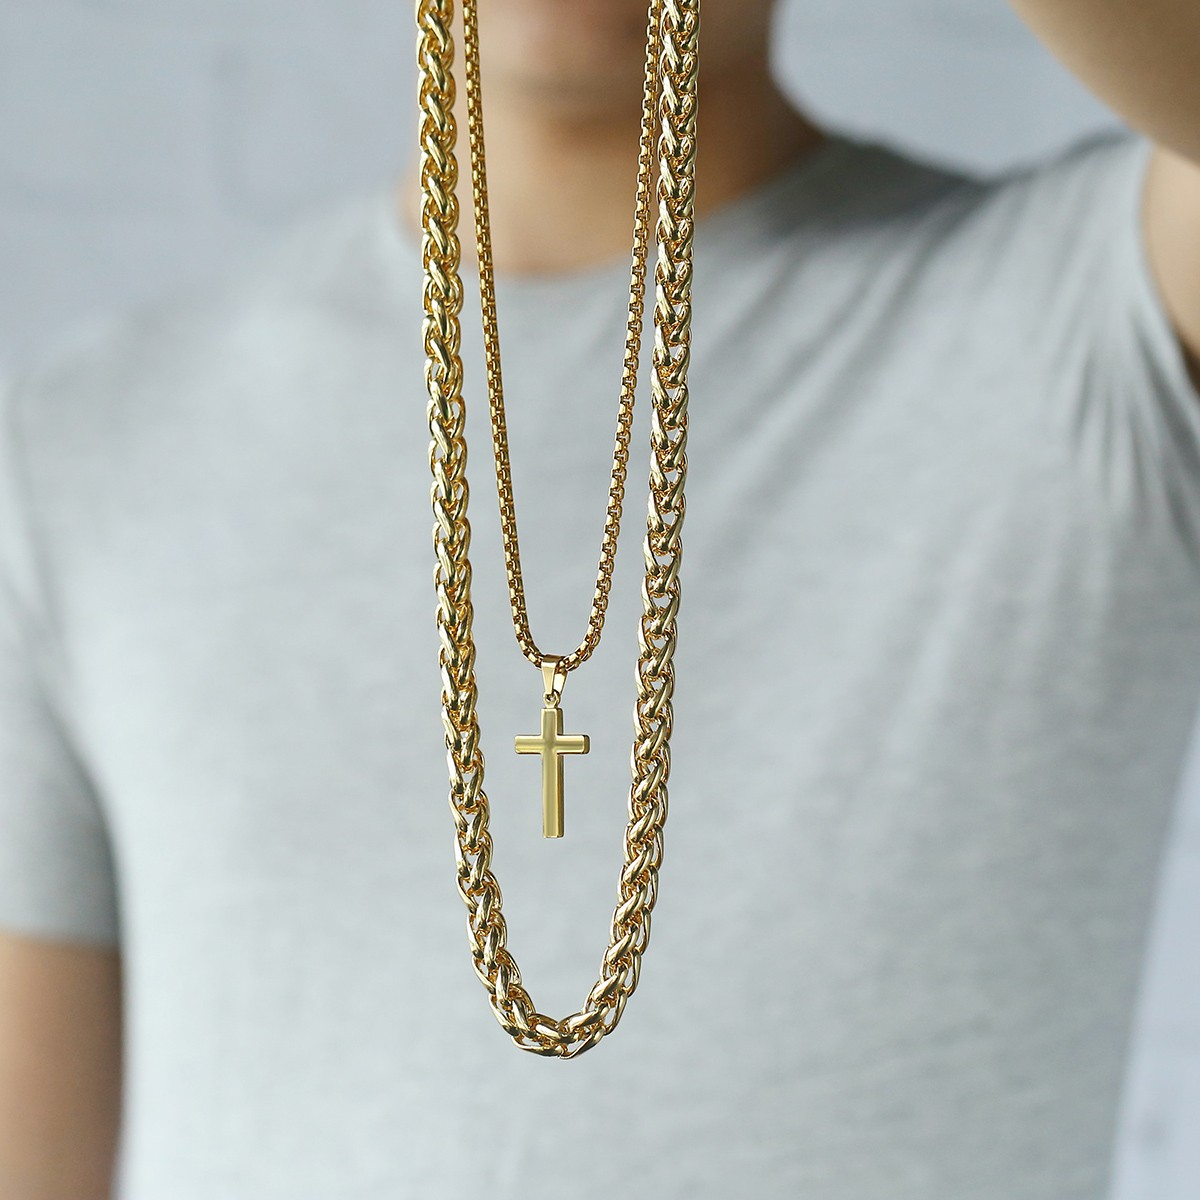 Cross Pendant Necklace Mens Double Chain Stainless Steel Curb Wheat Gold Silver Ebay